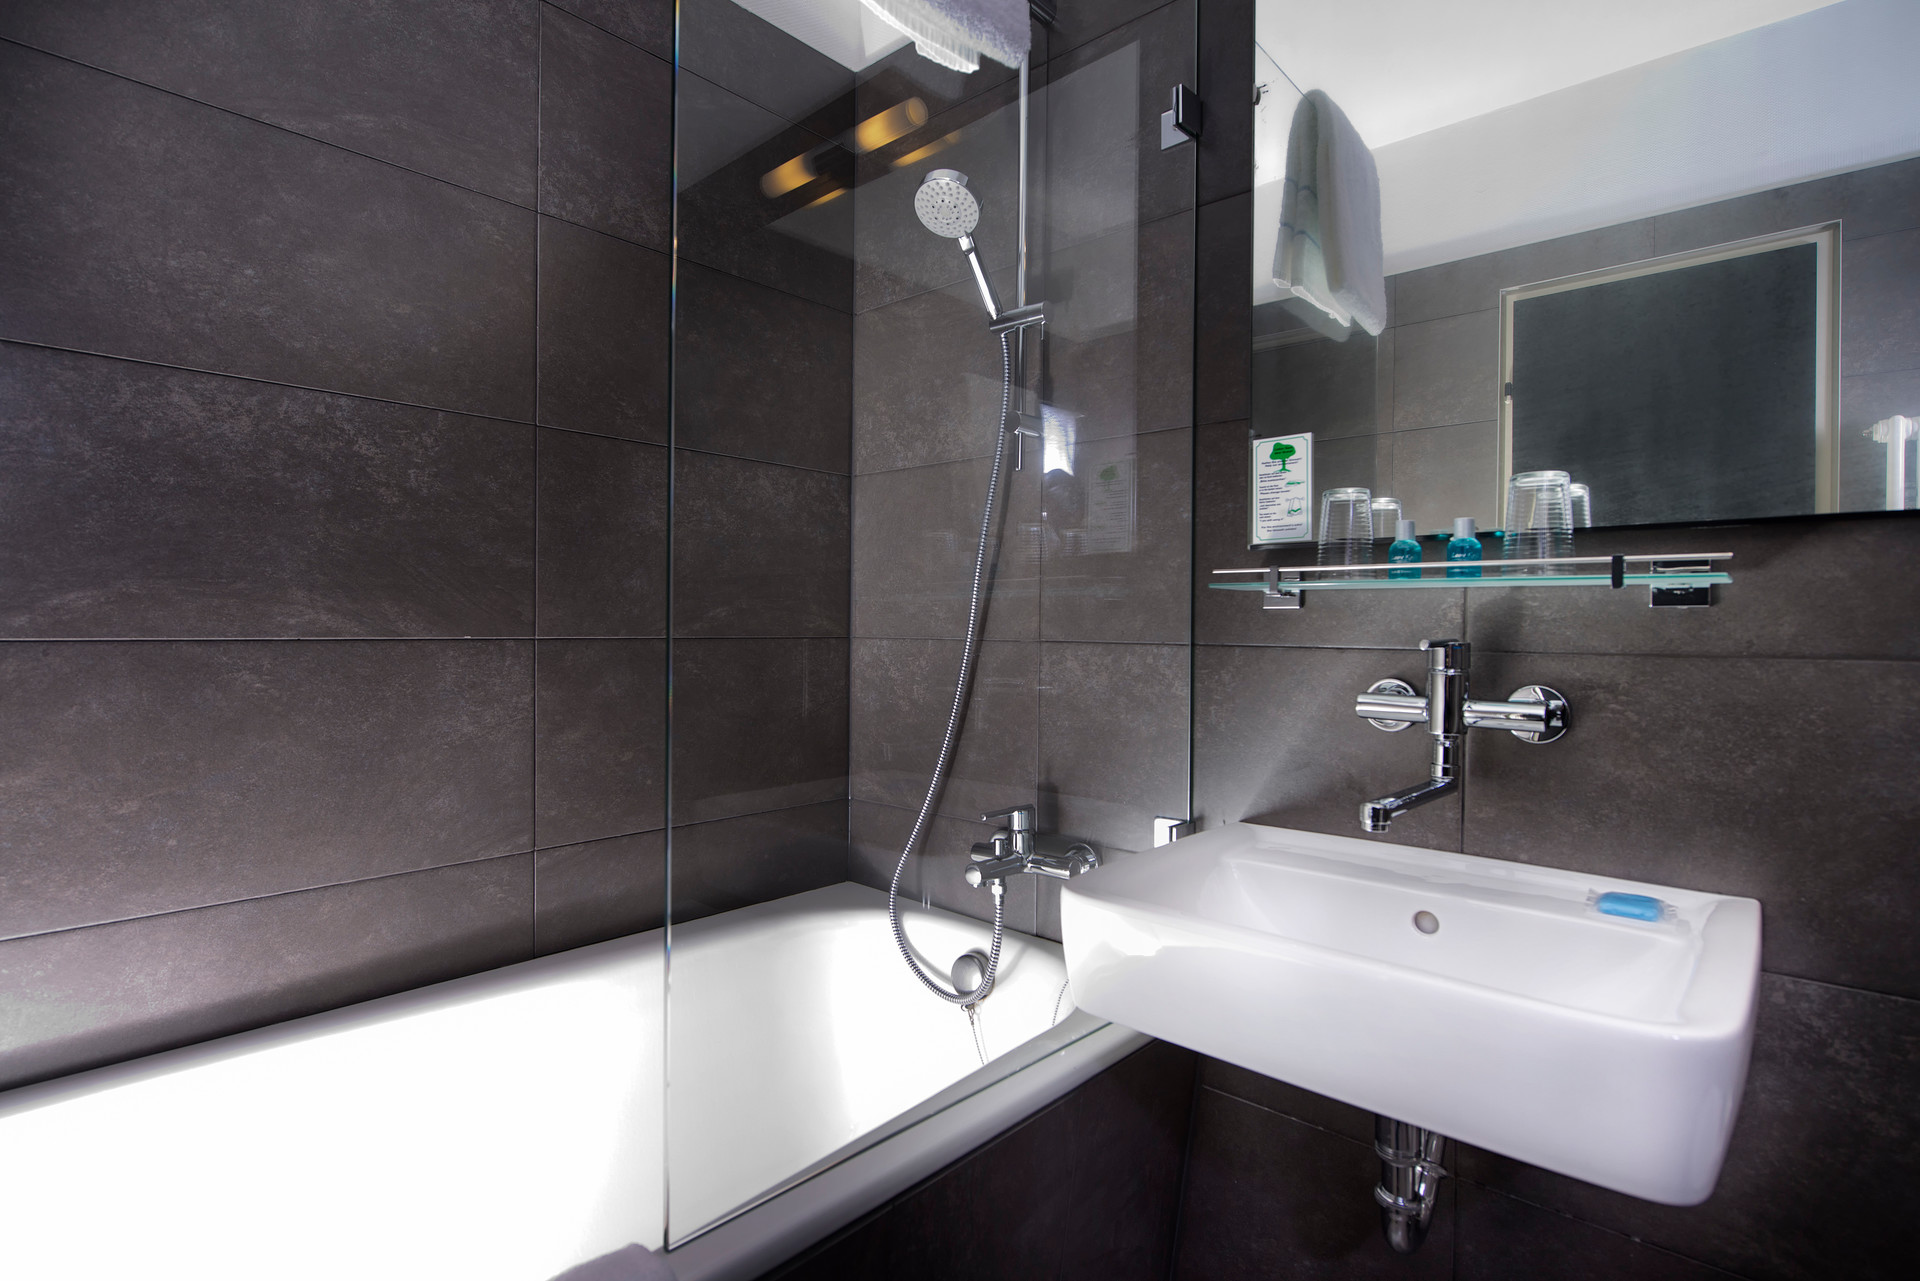 Hotel Excelsior Ludwigshafen - Exklusives Hotel Ludwigshafen City